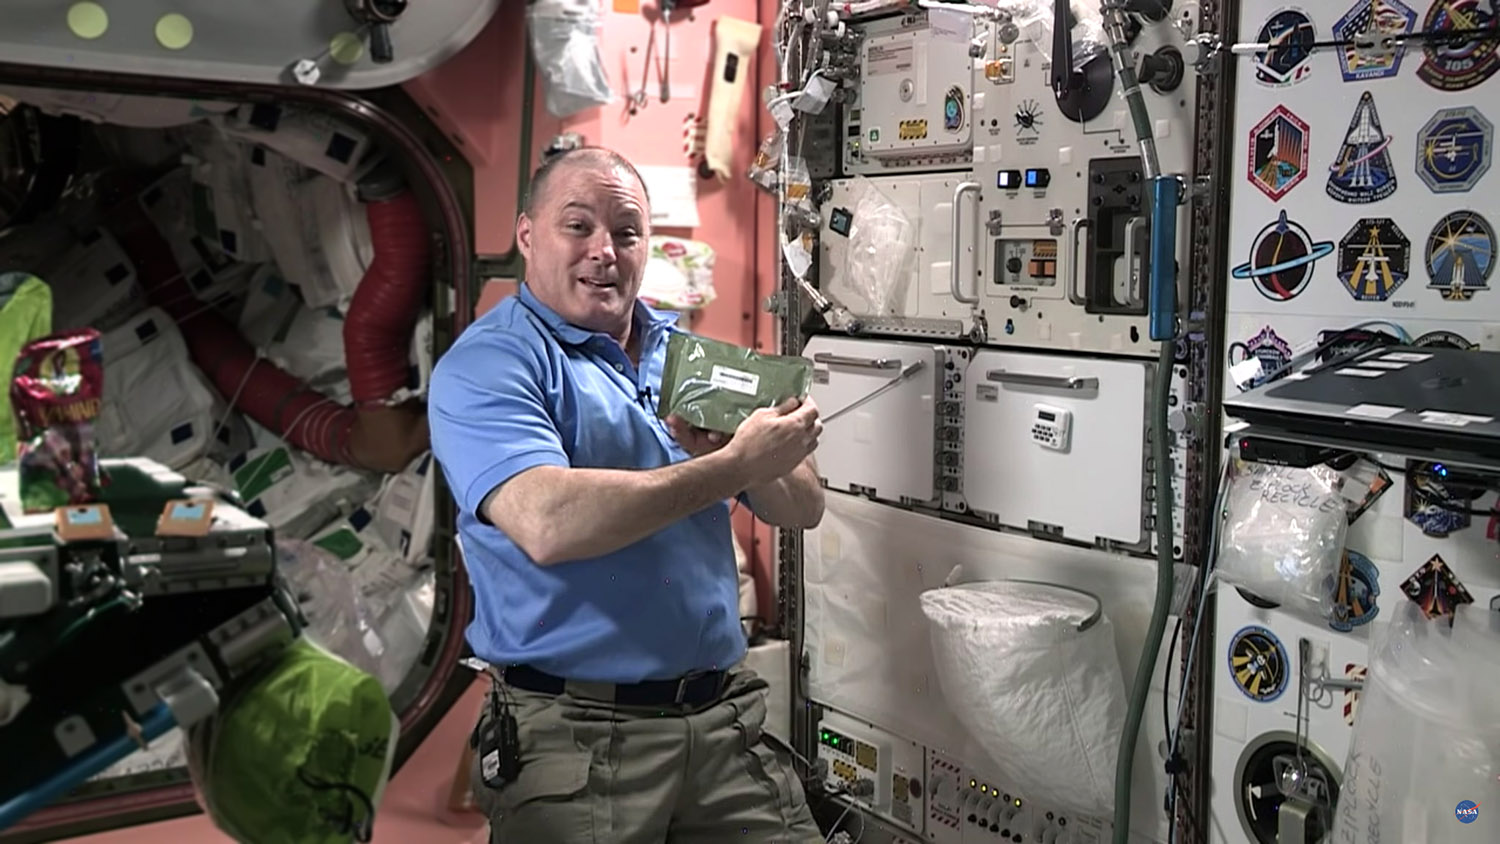 stemonstration5 MRE galley iss